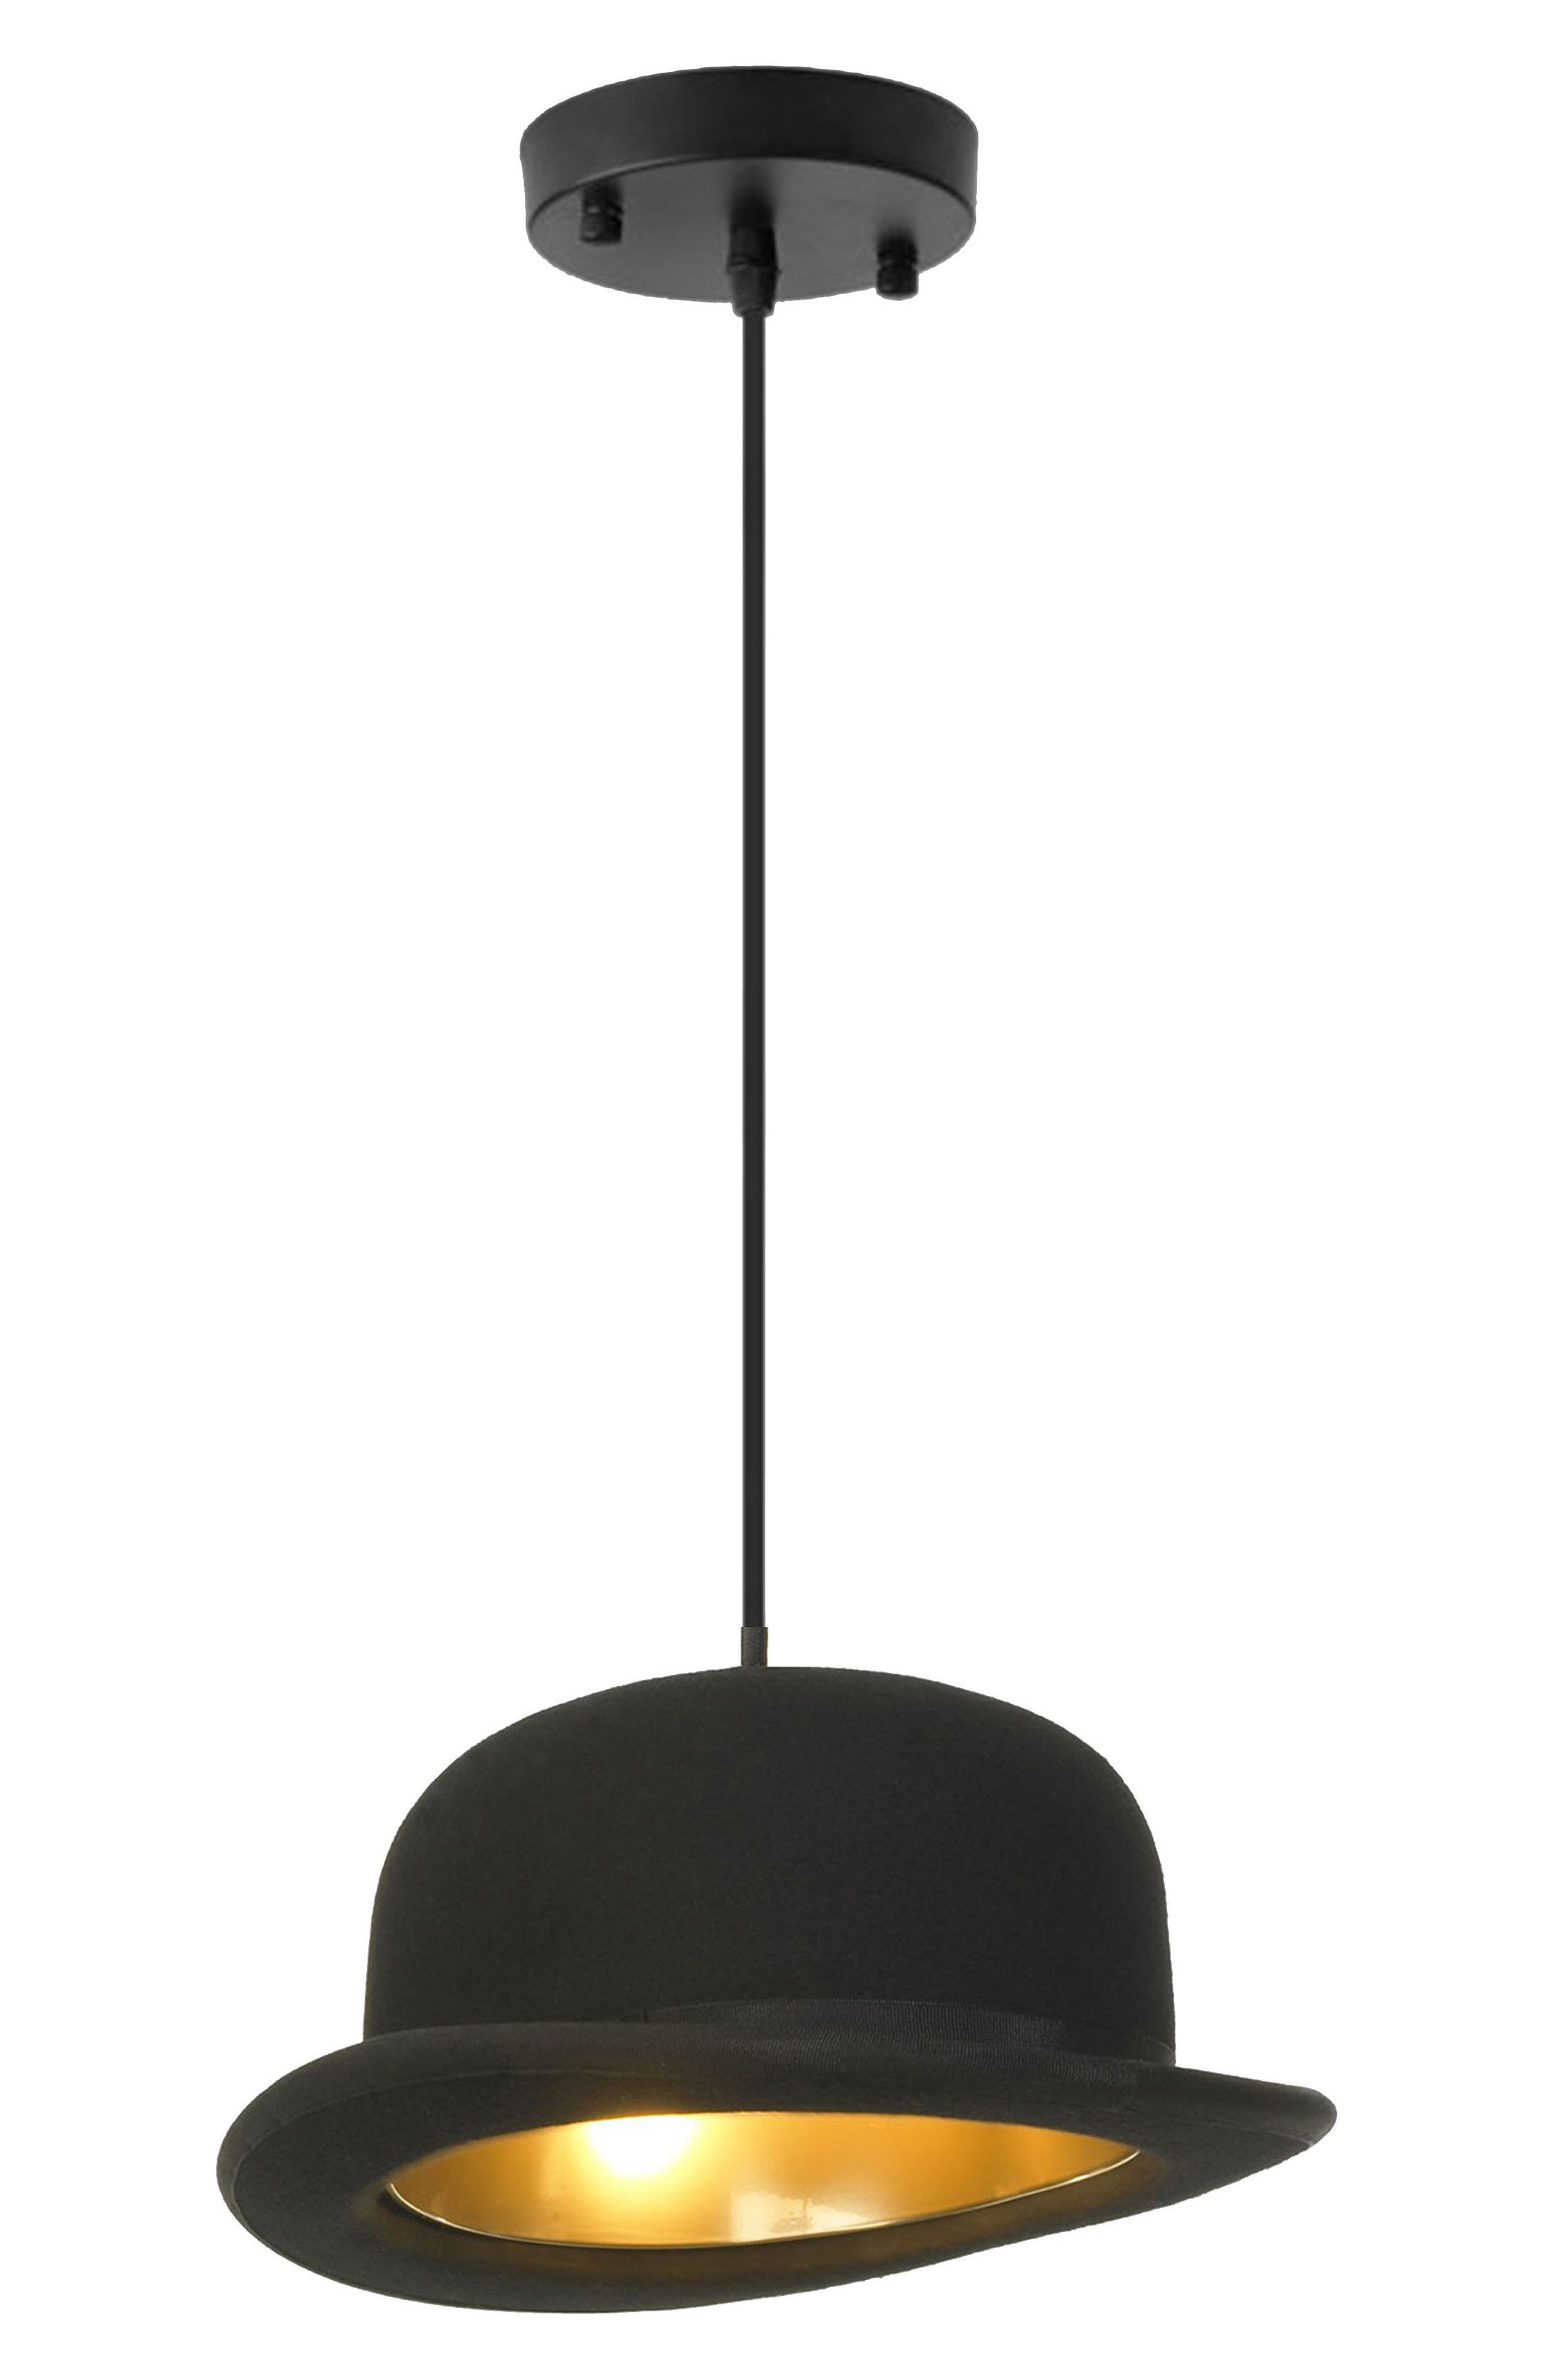 Blaxton Bowler Hat Ceiling Fixture,                             Main thumbnail 1, color,